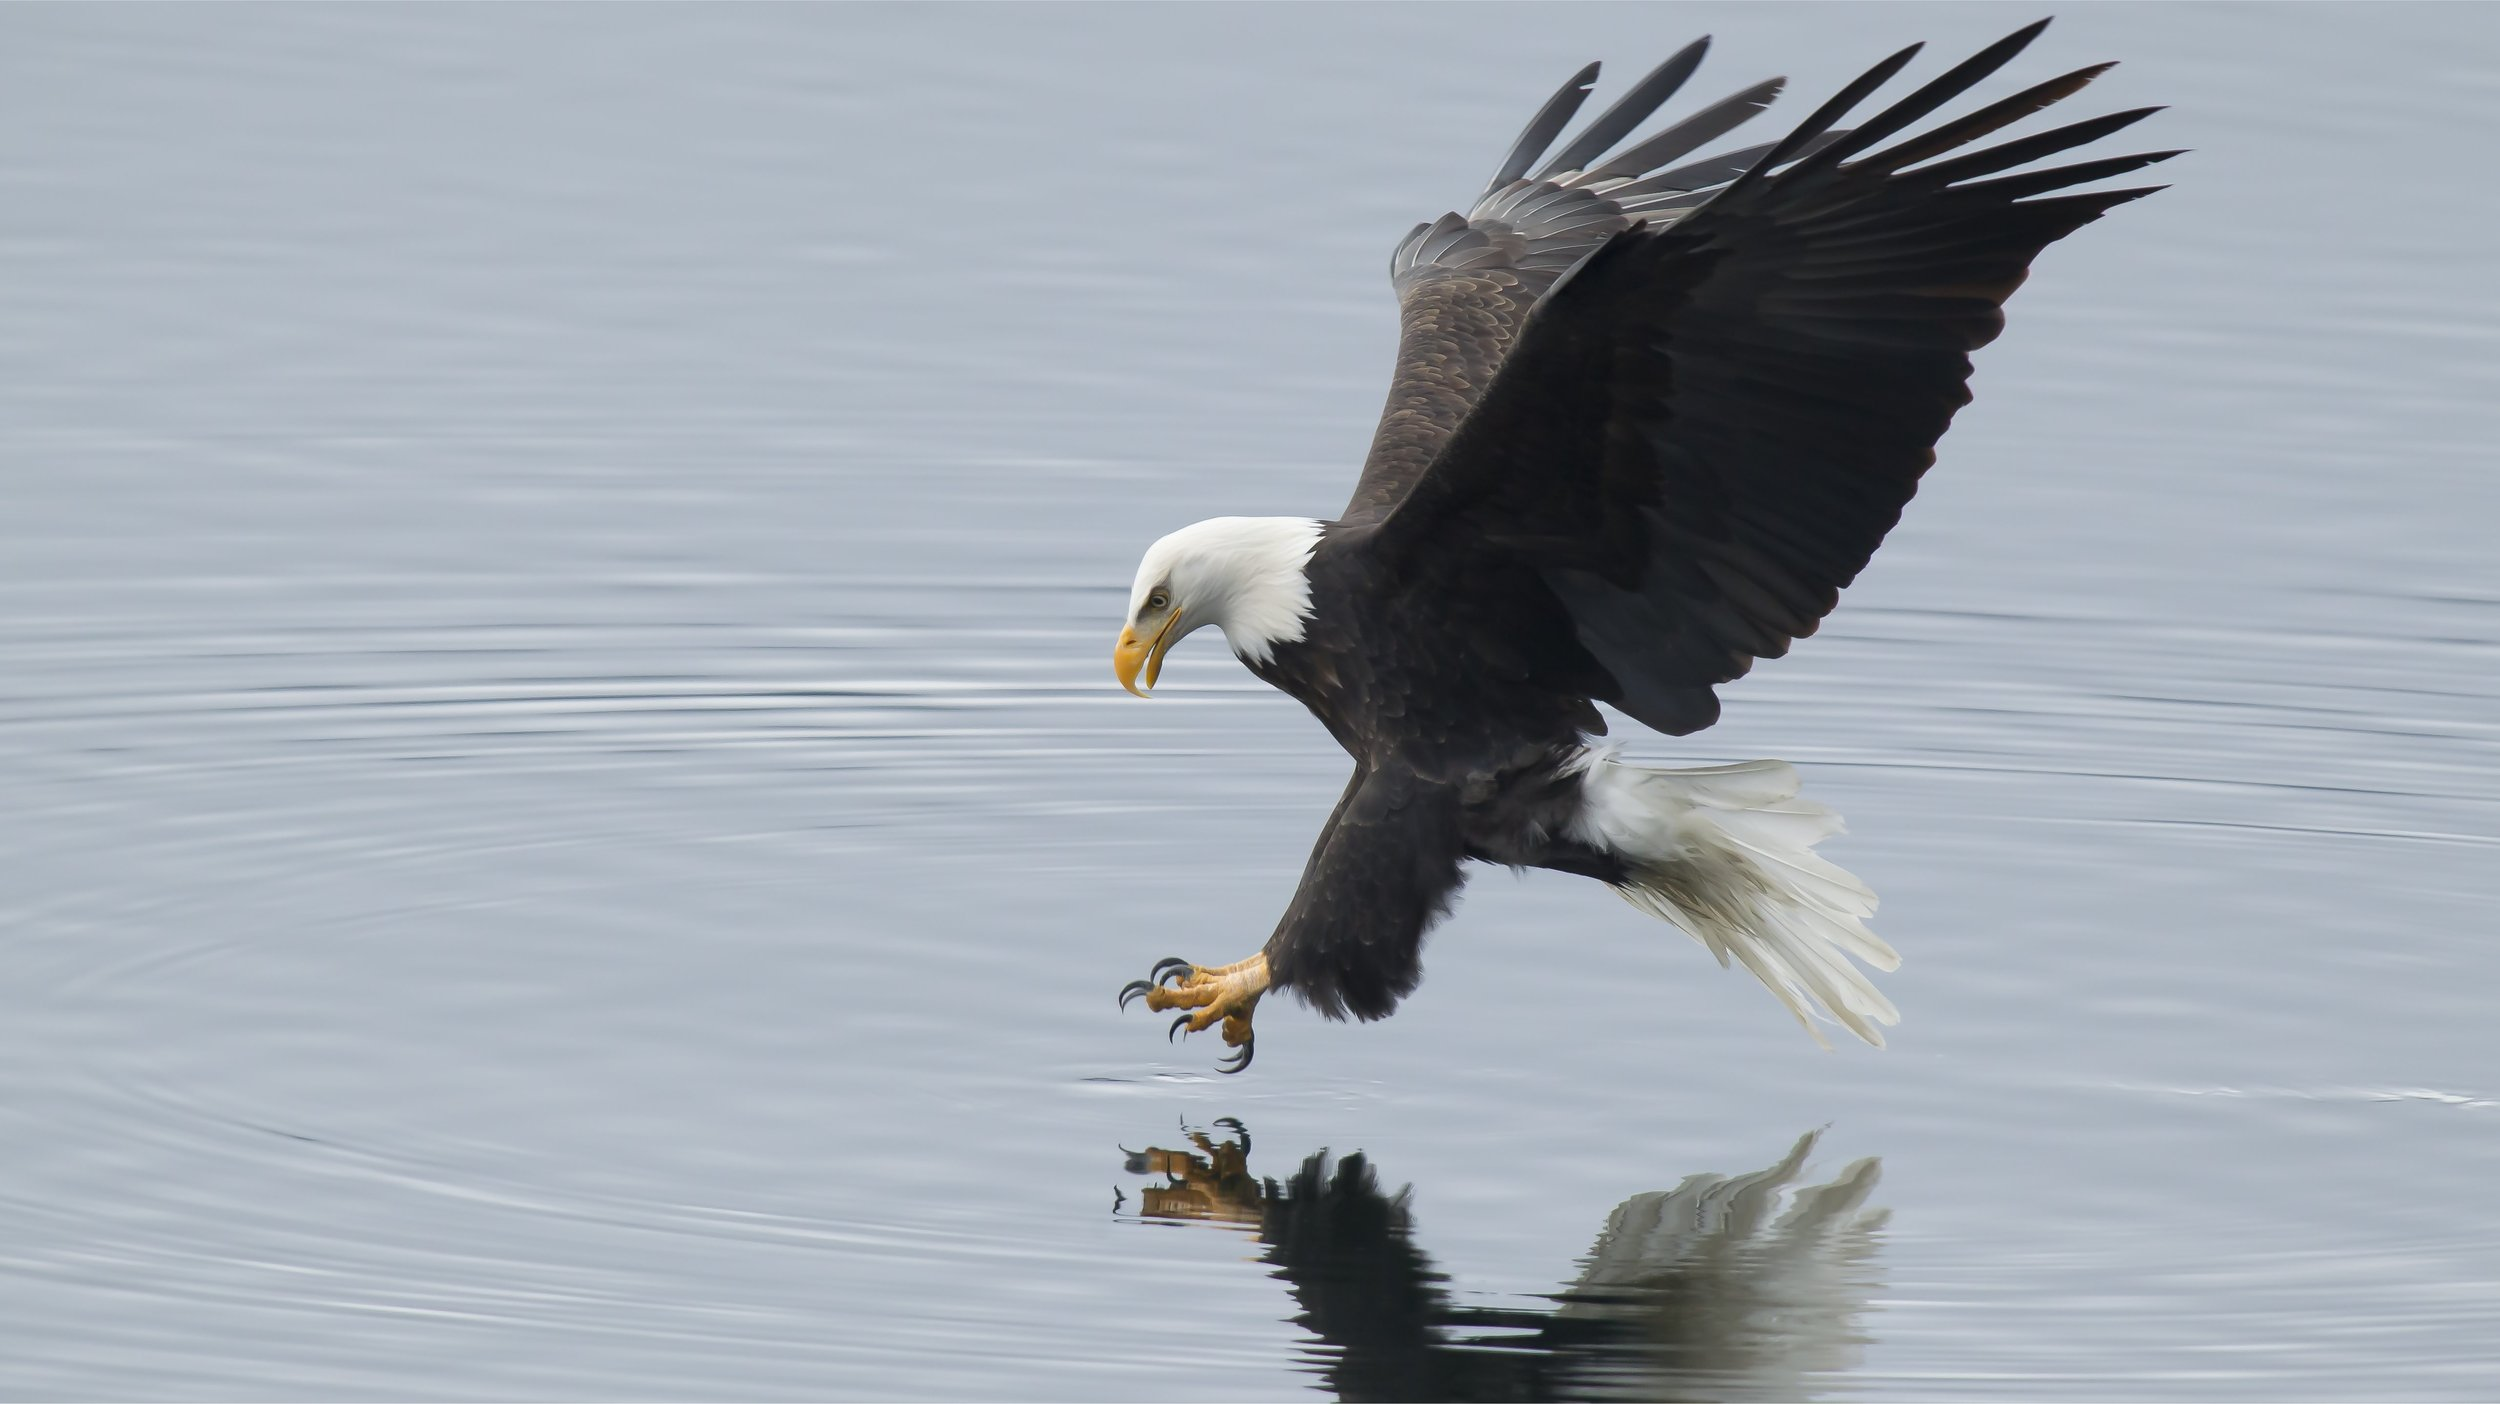 eagle_fishing_dp1.jpg